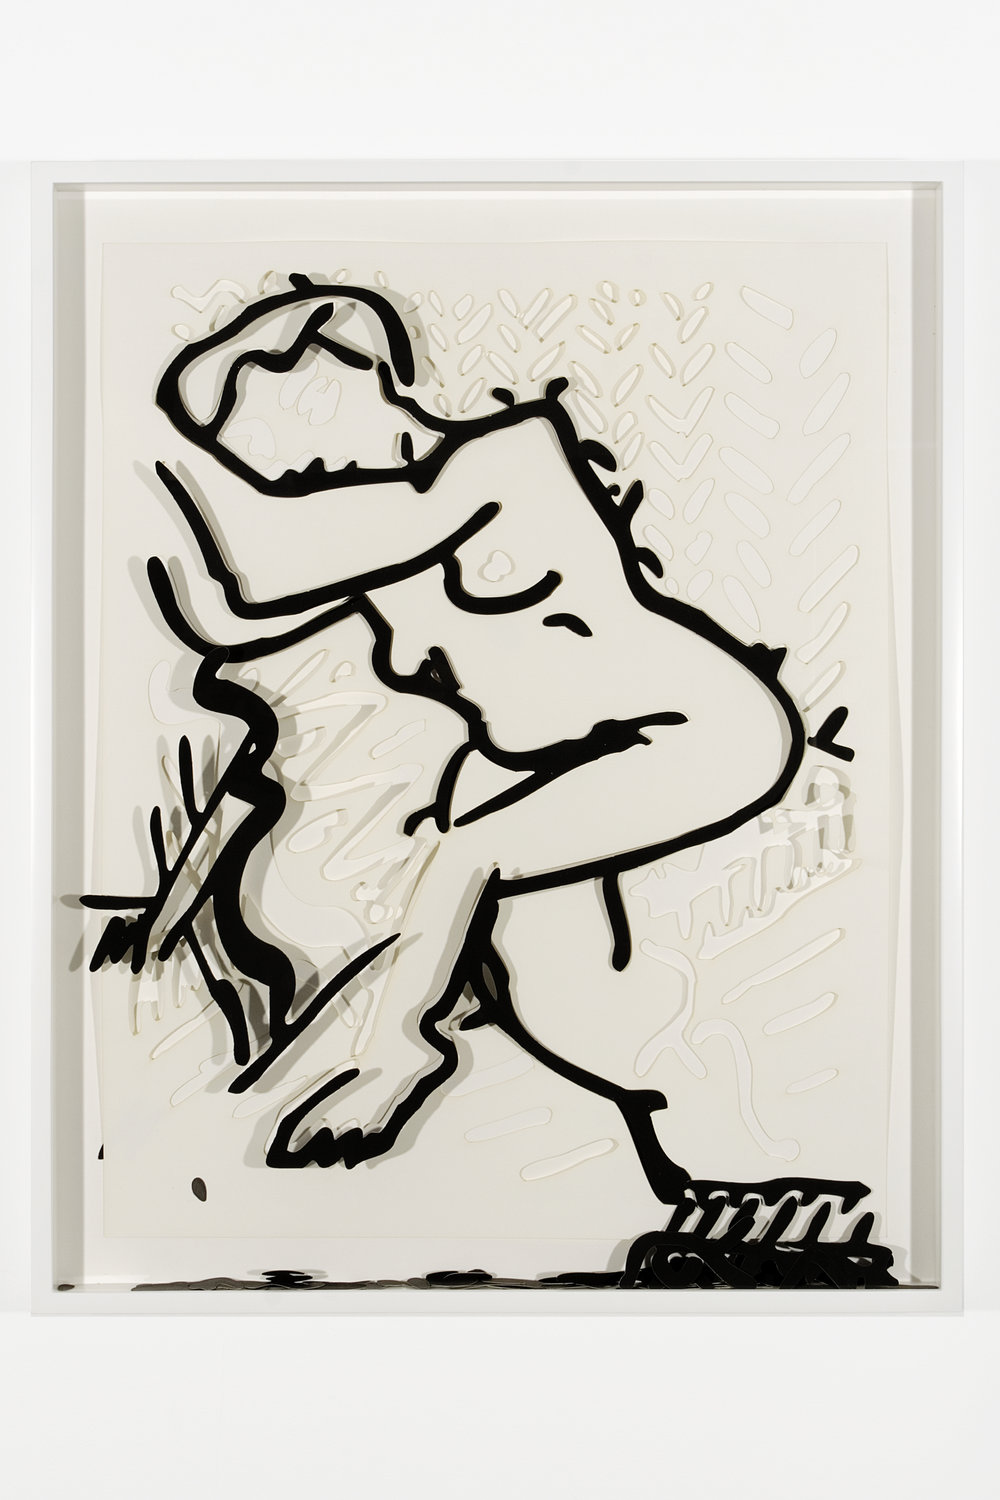 """Collapsed Drawing: """"Unknown Title"""" (Henri Matisse), 2007 laser-cut paper and laser-cut archival digital print mounted on museum board 81 x 65,6 cm - 31 3/4 x 25 7/8 inches (framed)"""